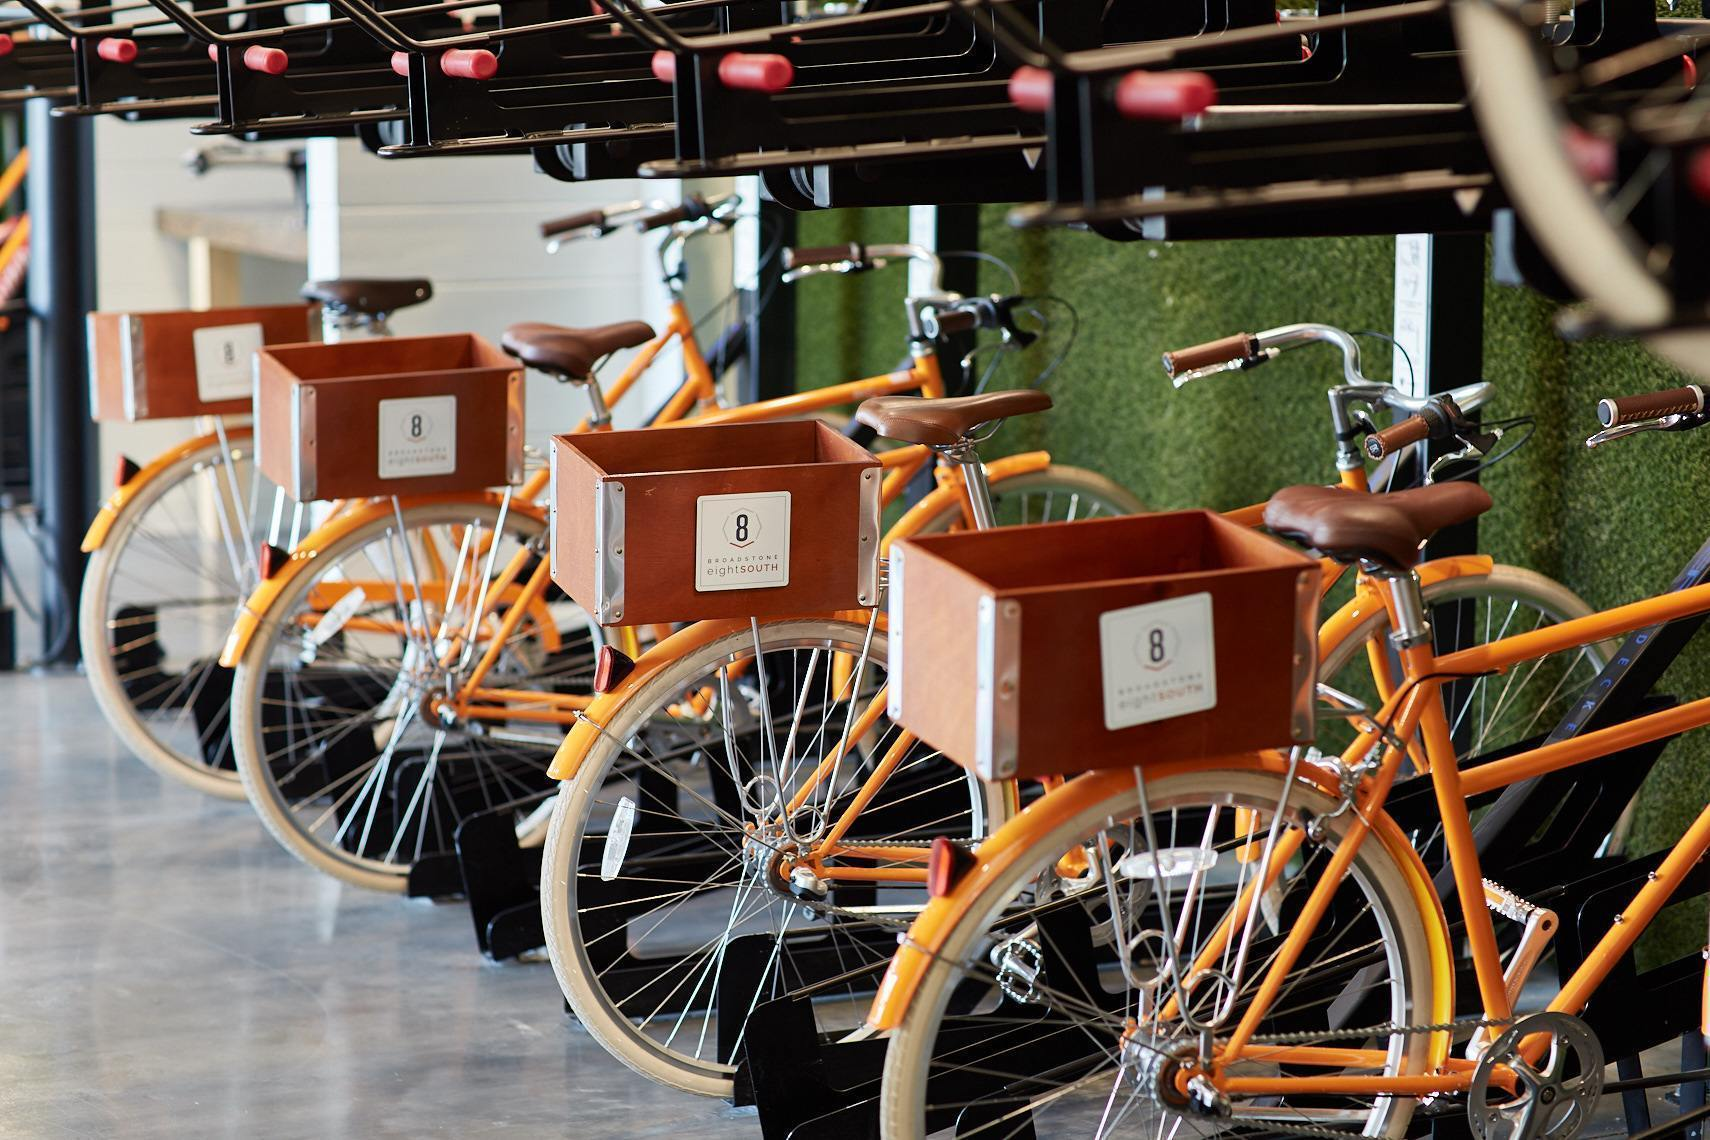 6 Reasons Why Your Organization Should Invest in a Bike Fleet